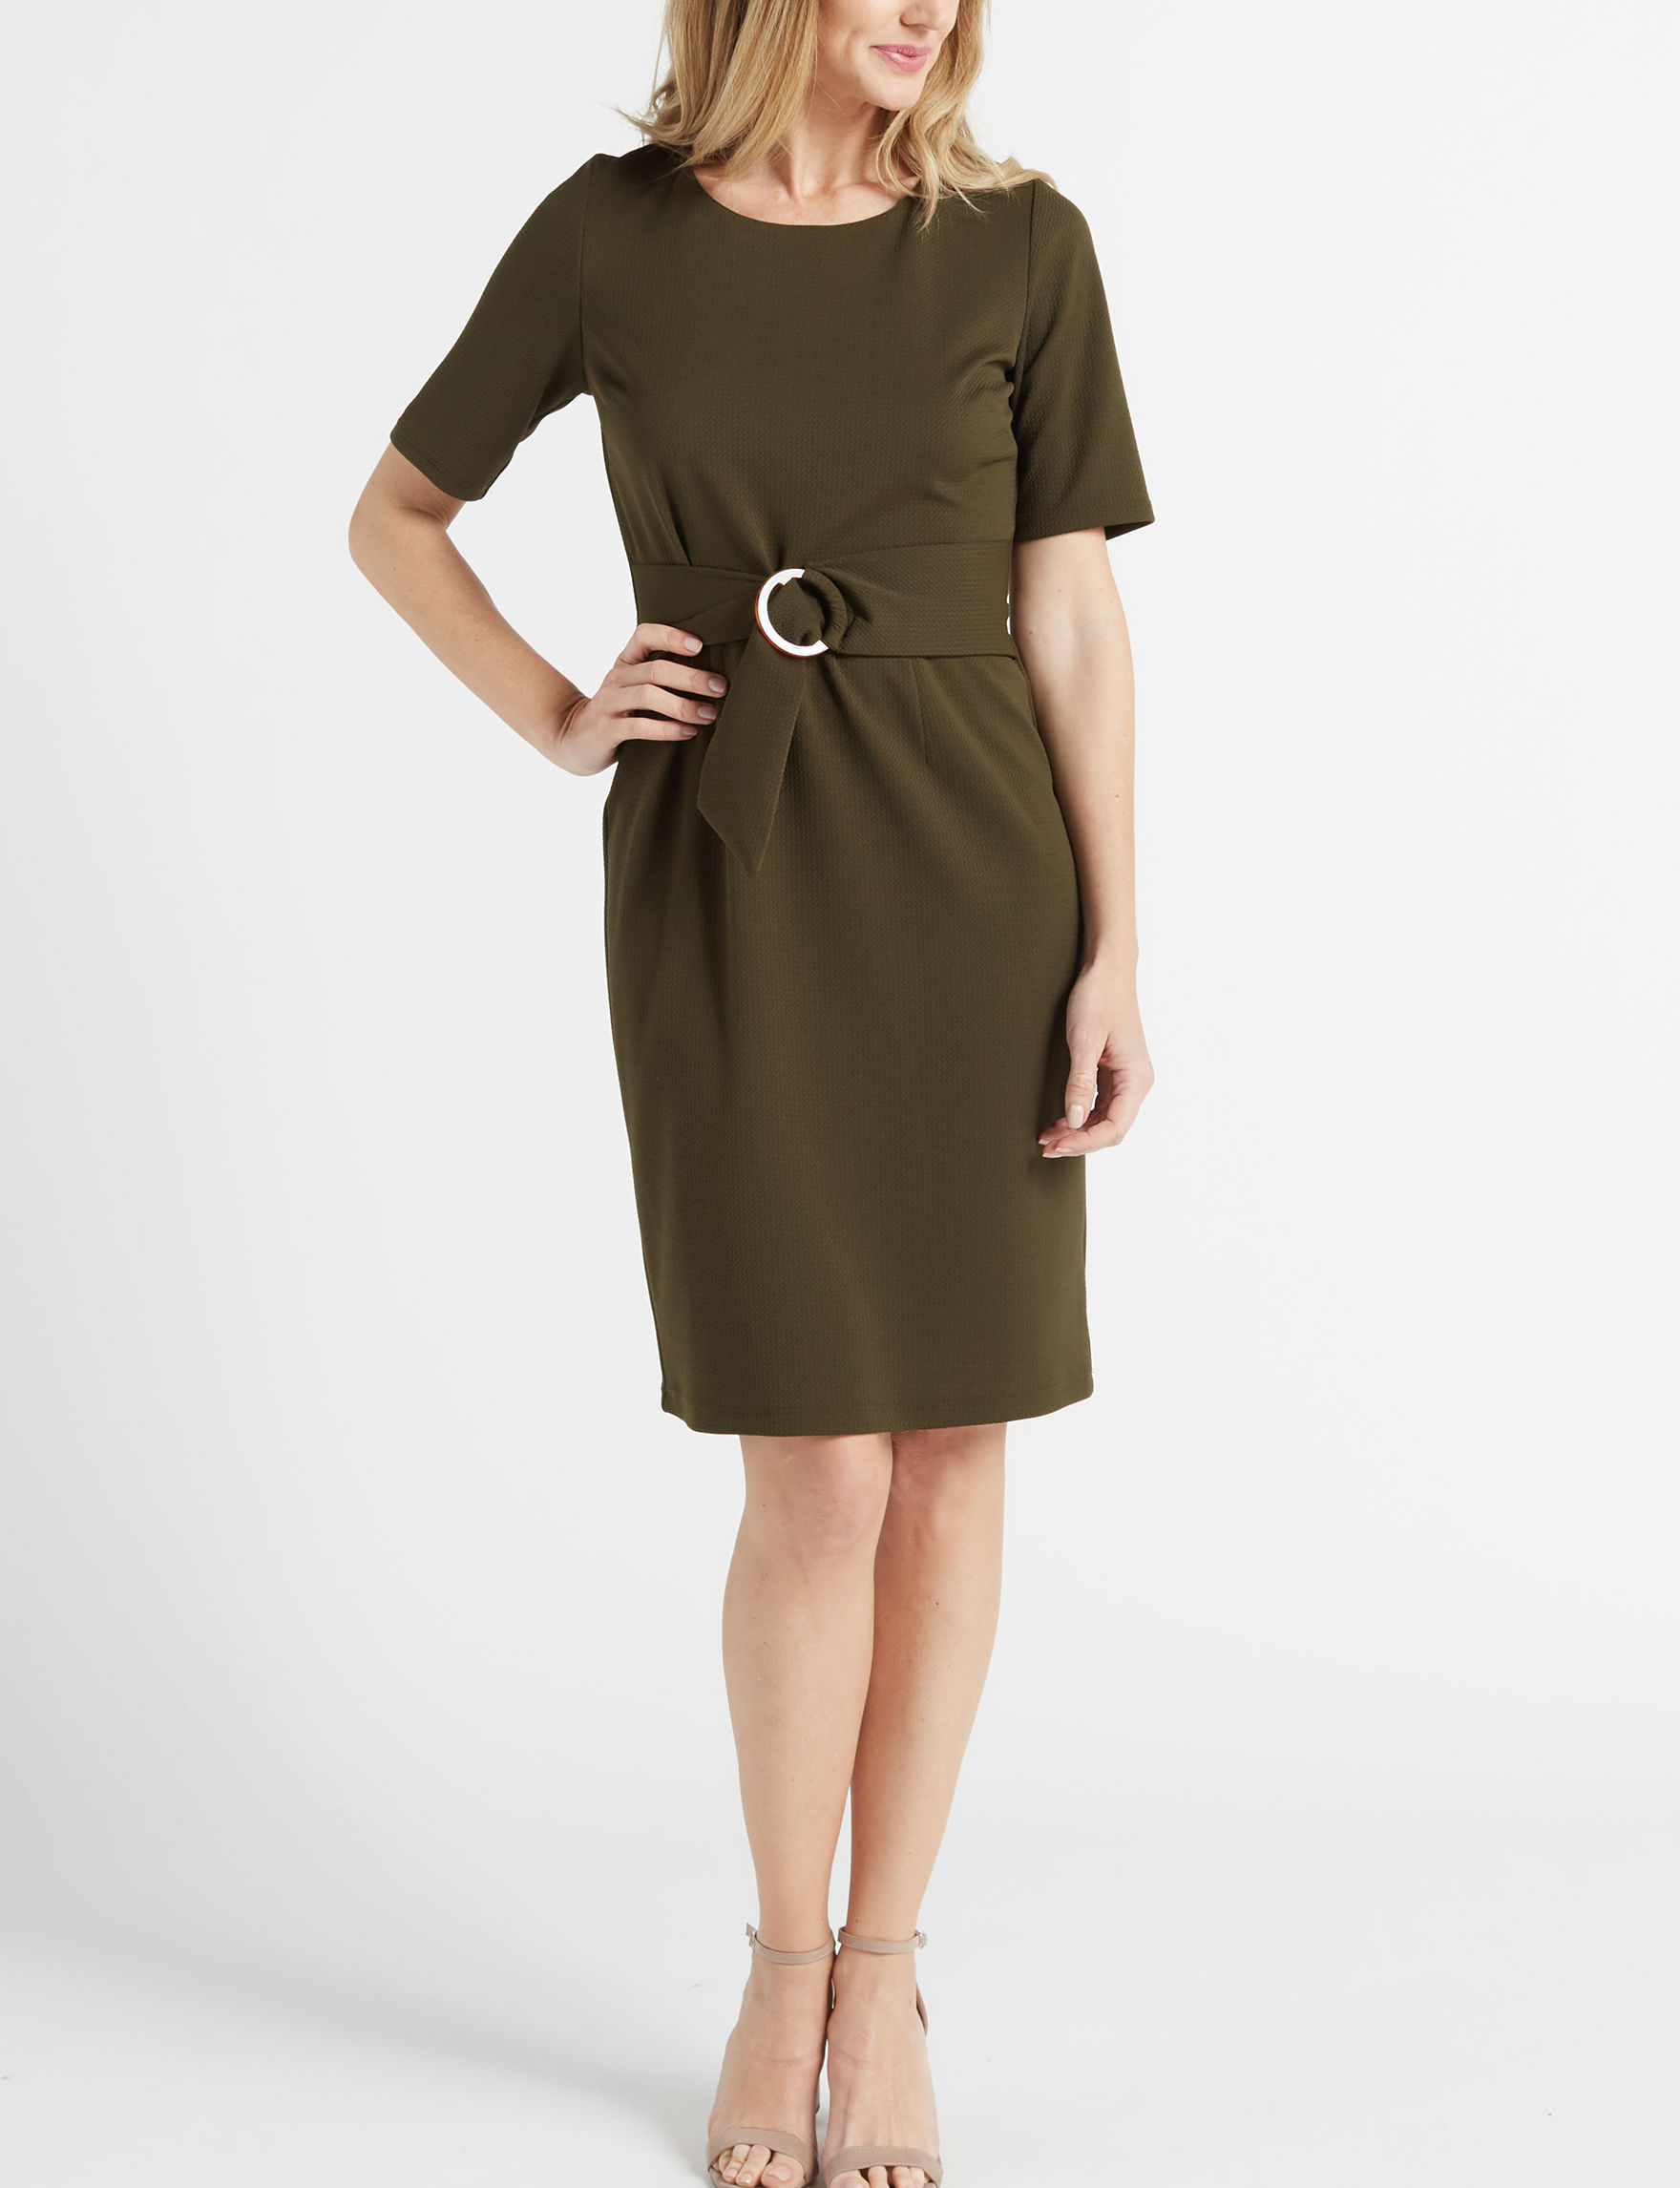 AGB Olive Everyday & Casual Sheath Dresses